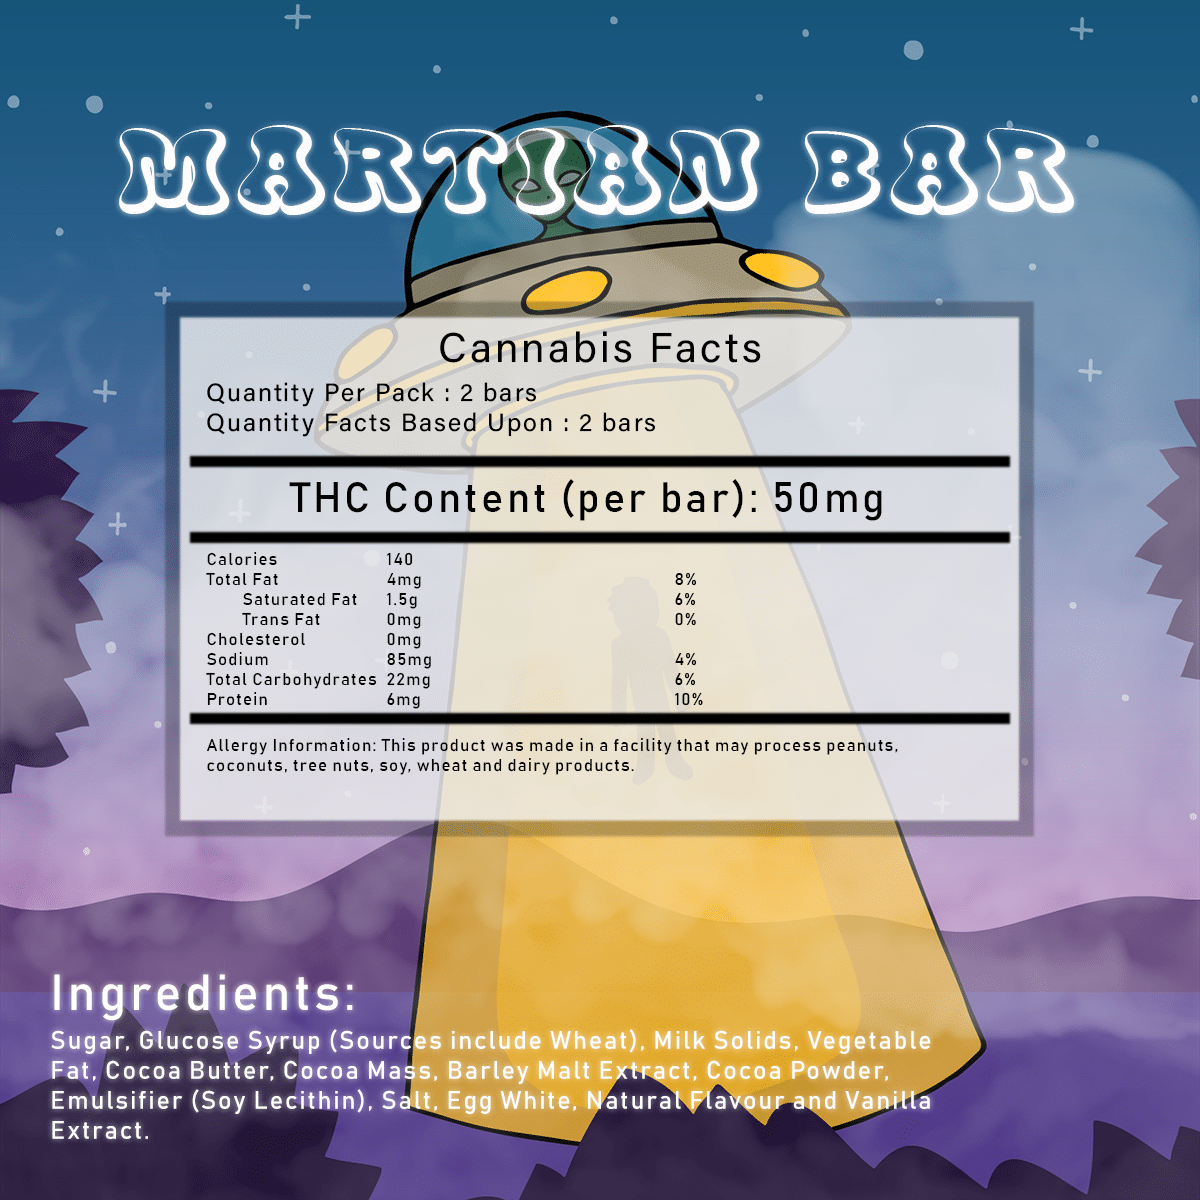 Martian Bar by Herbivores Edibles by Green Society - Image © 2018 Green Society. All Rights Reserved.